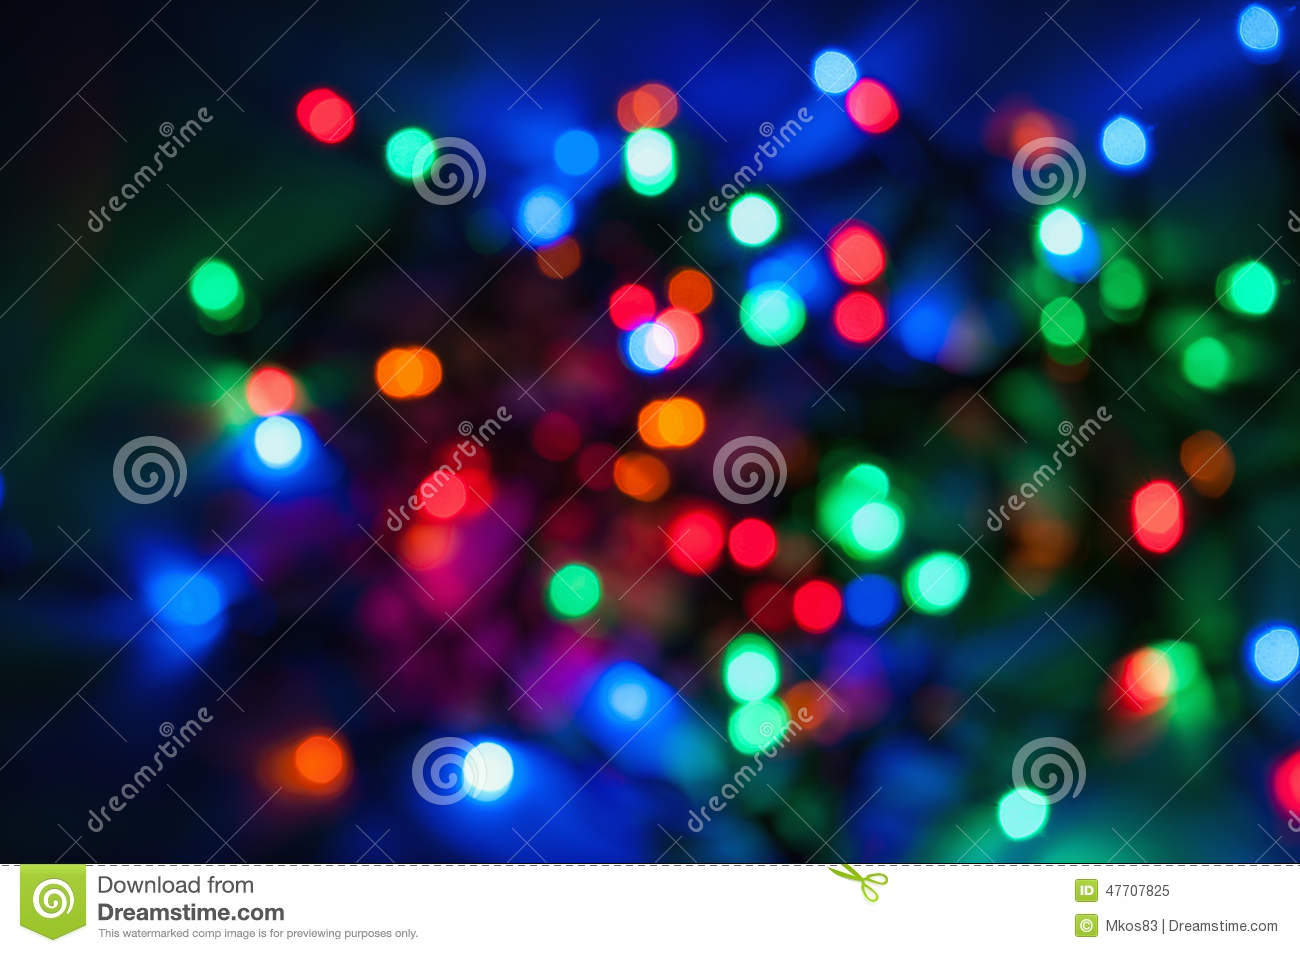 Blurred Colored Christmas Lights Background Stock Photo ...